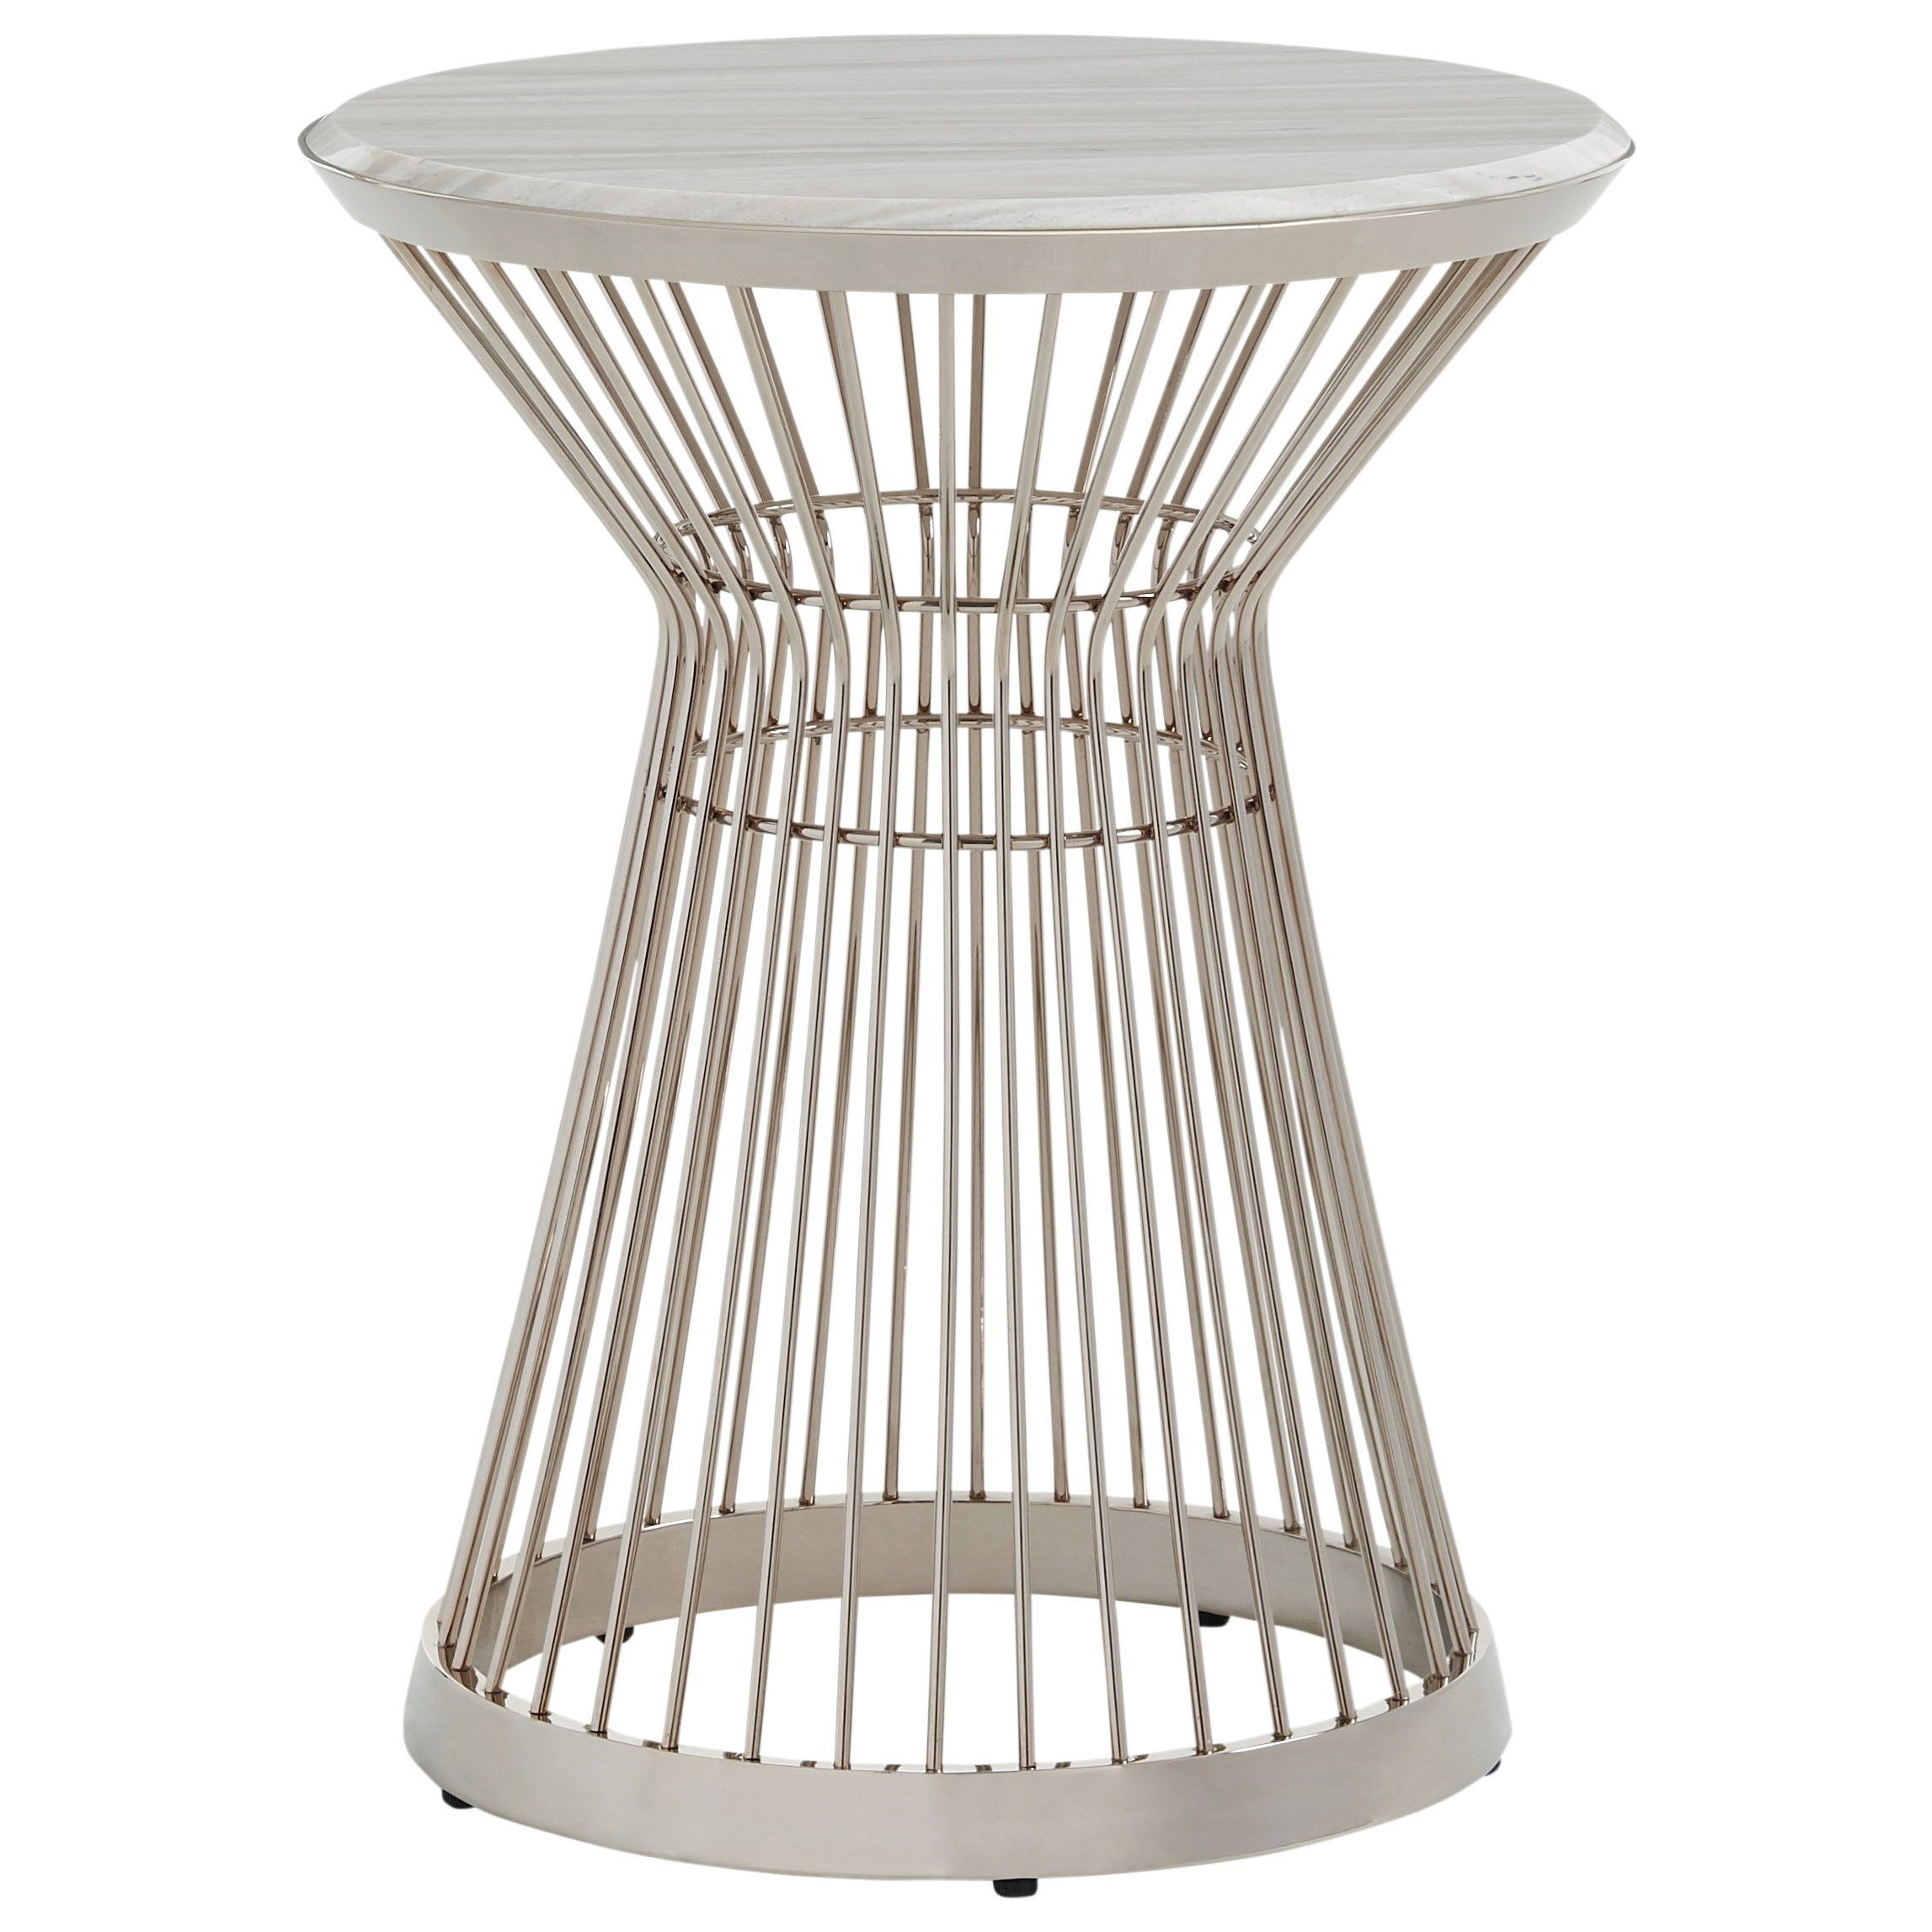 Ariana Martini Stainless Accent Table by Lexington at Sprintz Furniture